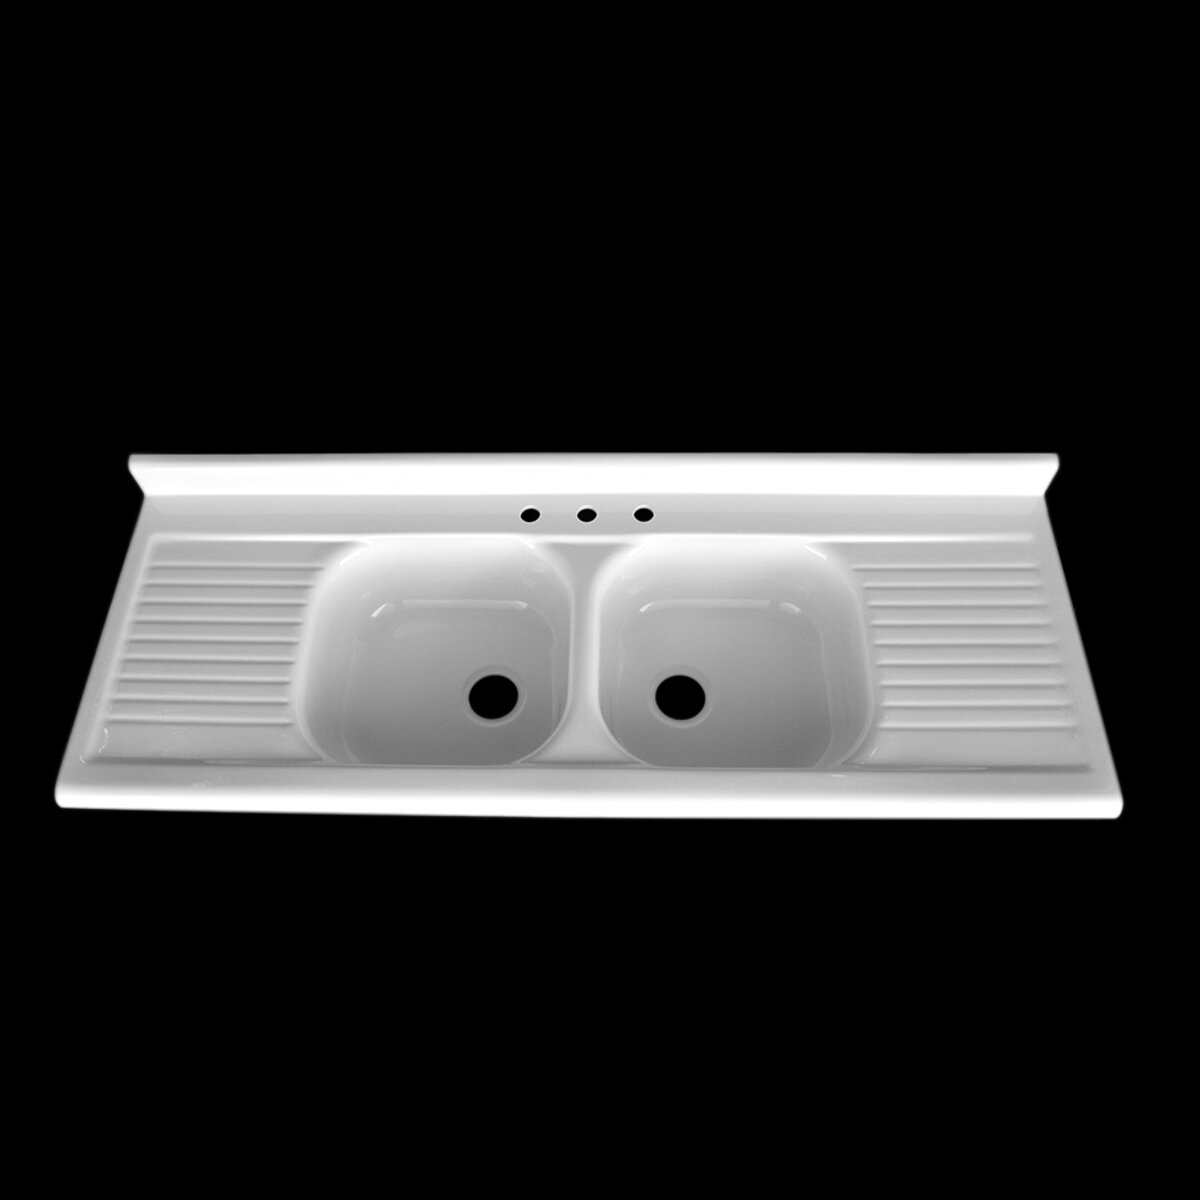 drainboard sink for sale compared to